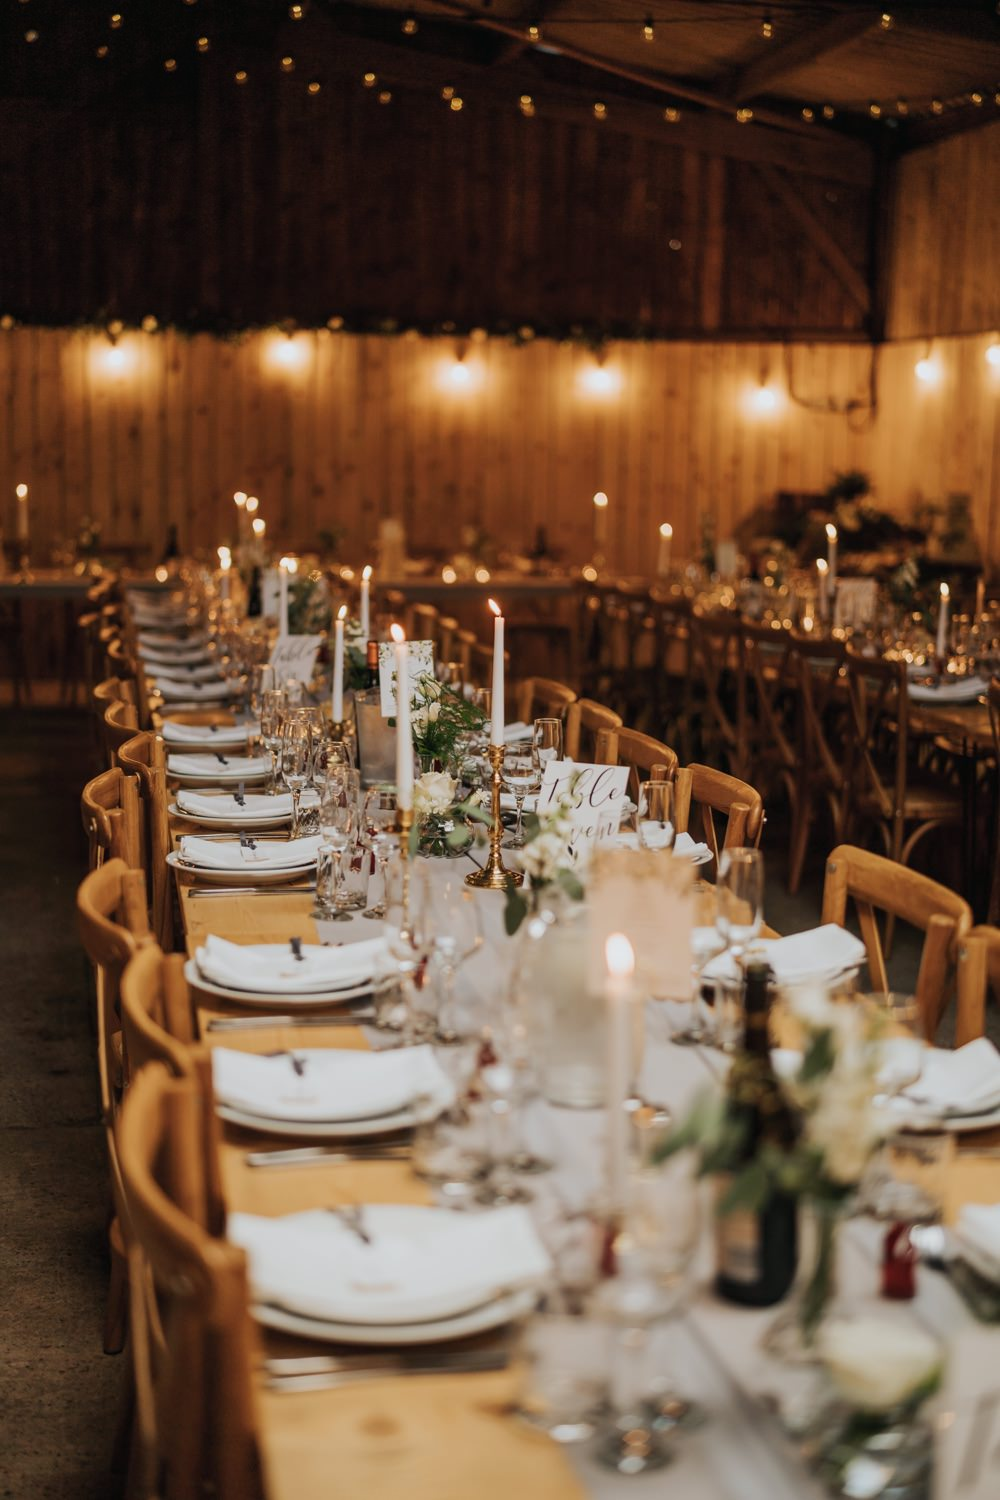 Decor Long Tables Candles Flowers The Barns East Yorkshire Wedding Bloom Weddings